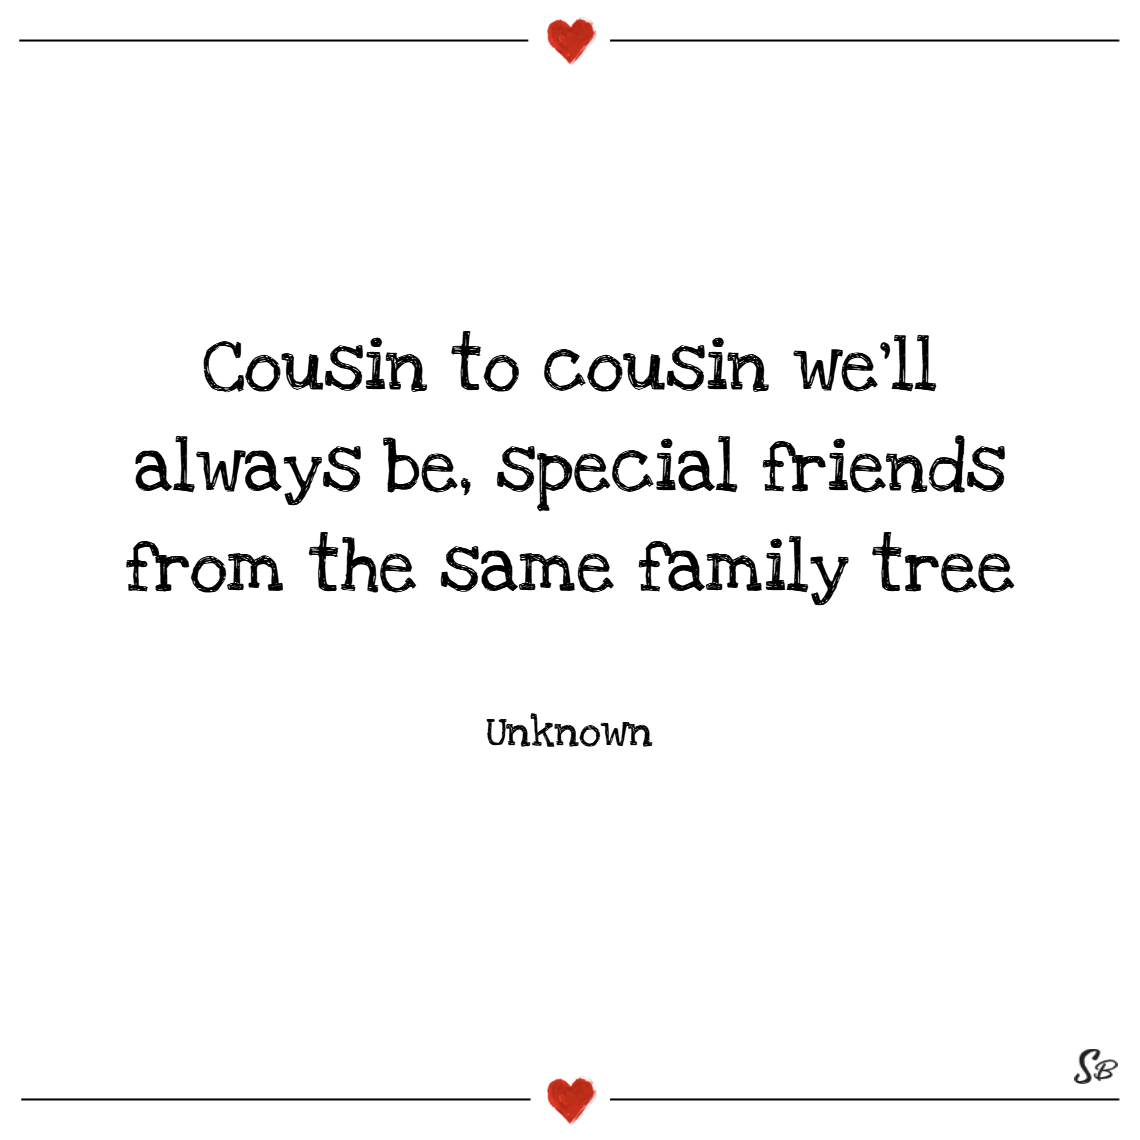 Cousin to cousin we'll always be, special friends from the same family tree. – unknown